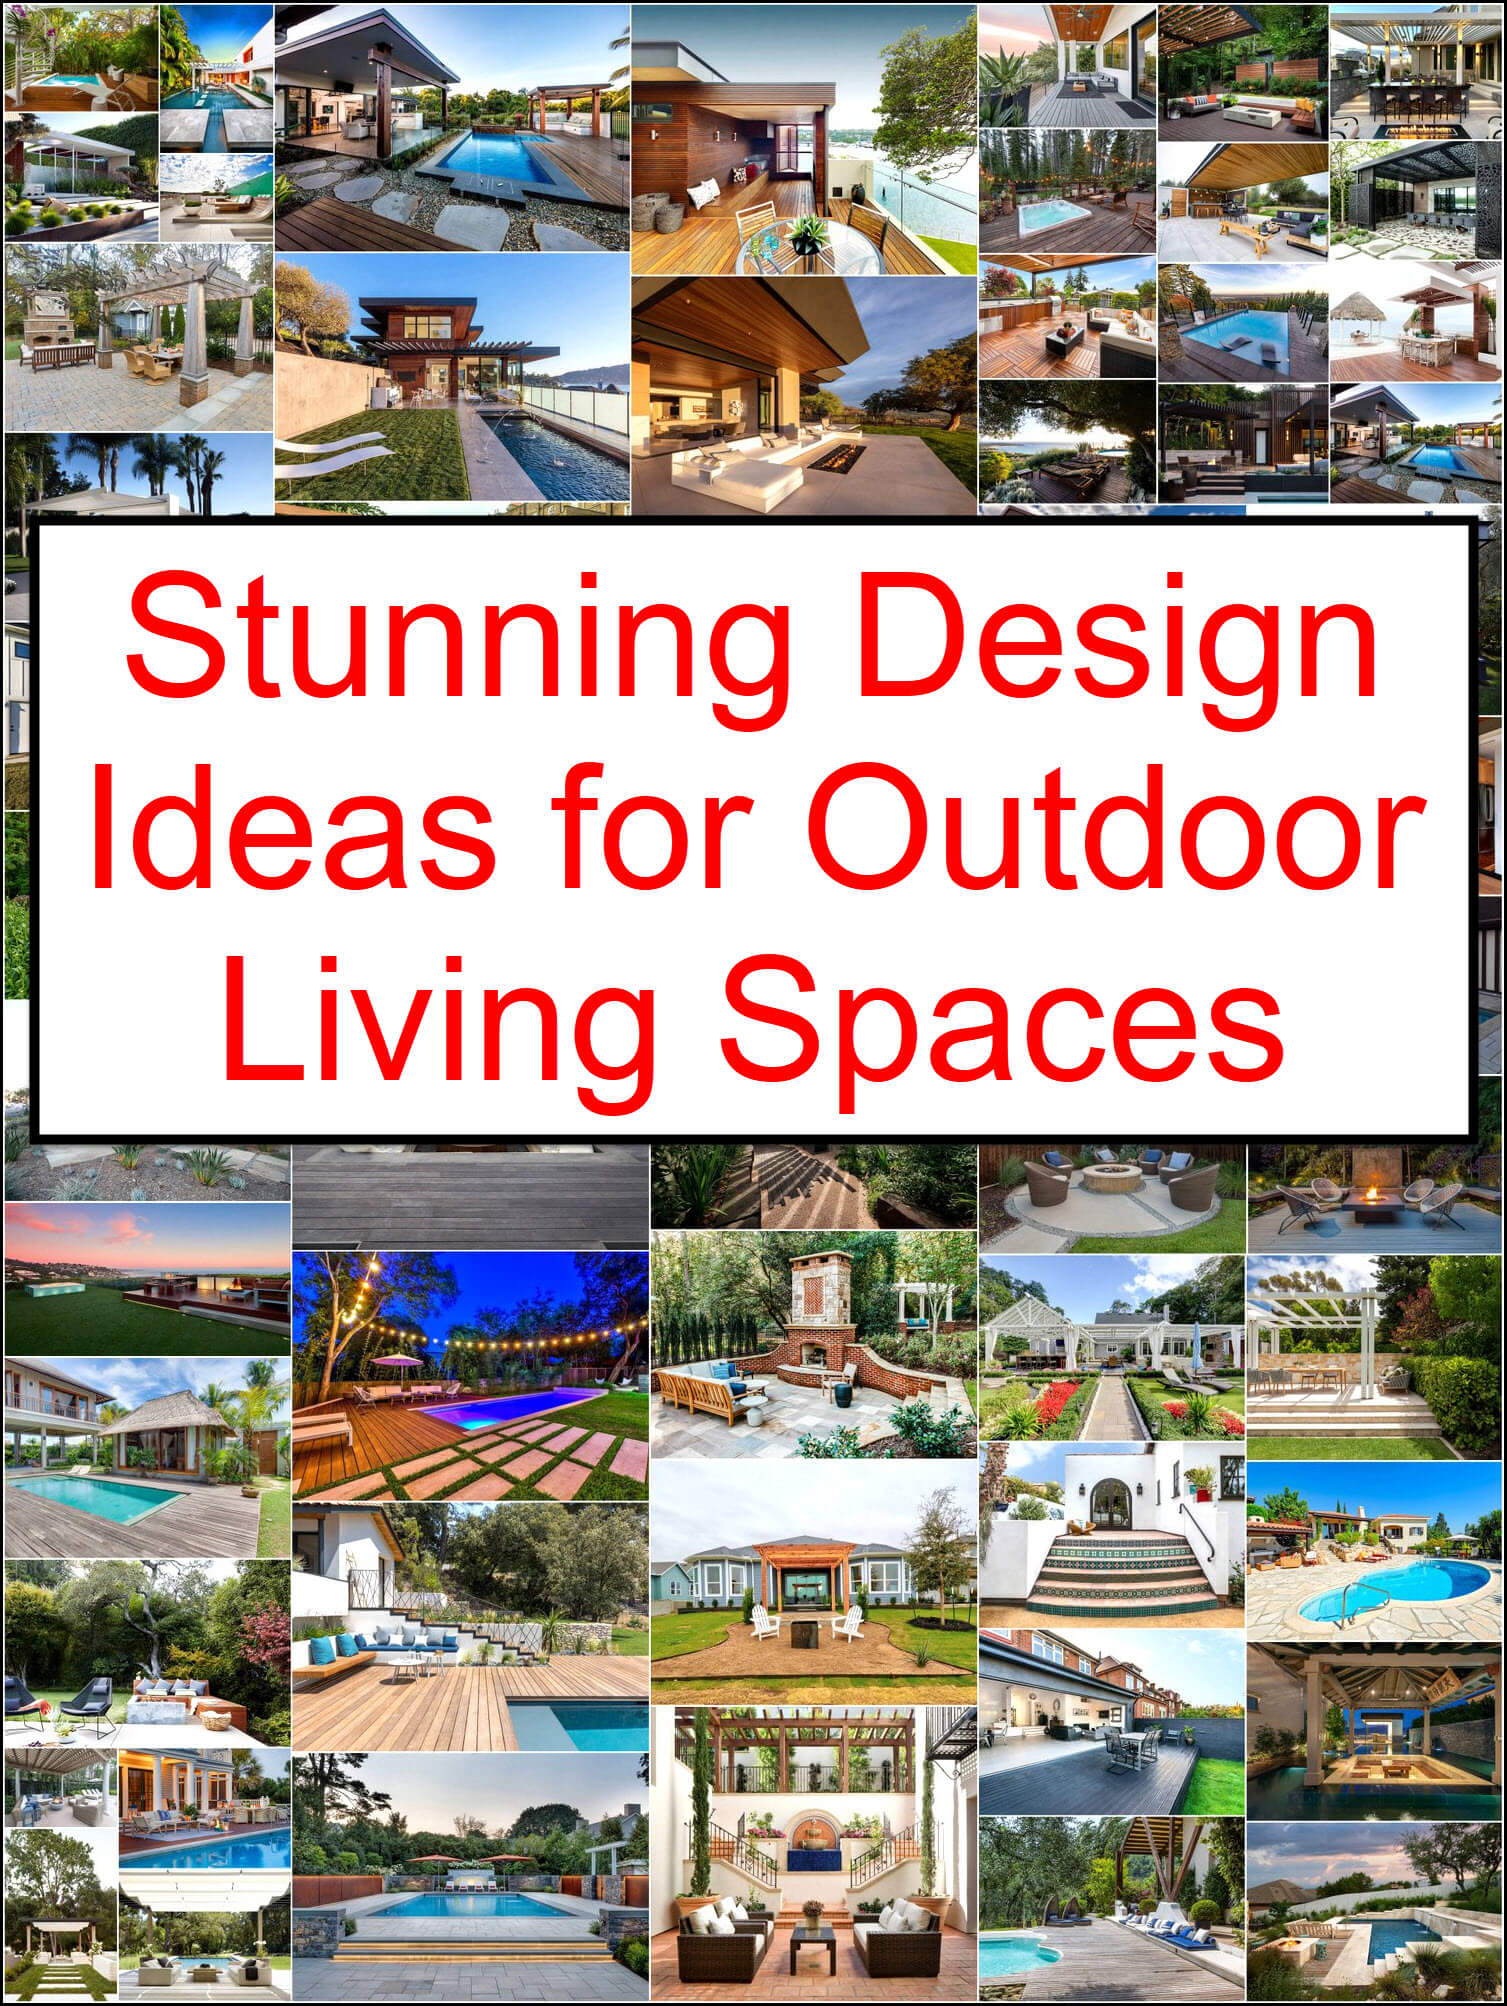 Stunning Design Ideas for Outdoor Living Spaces